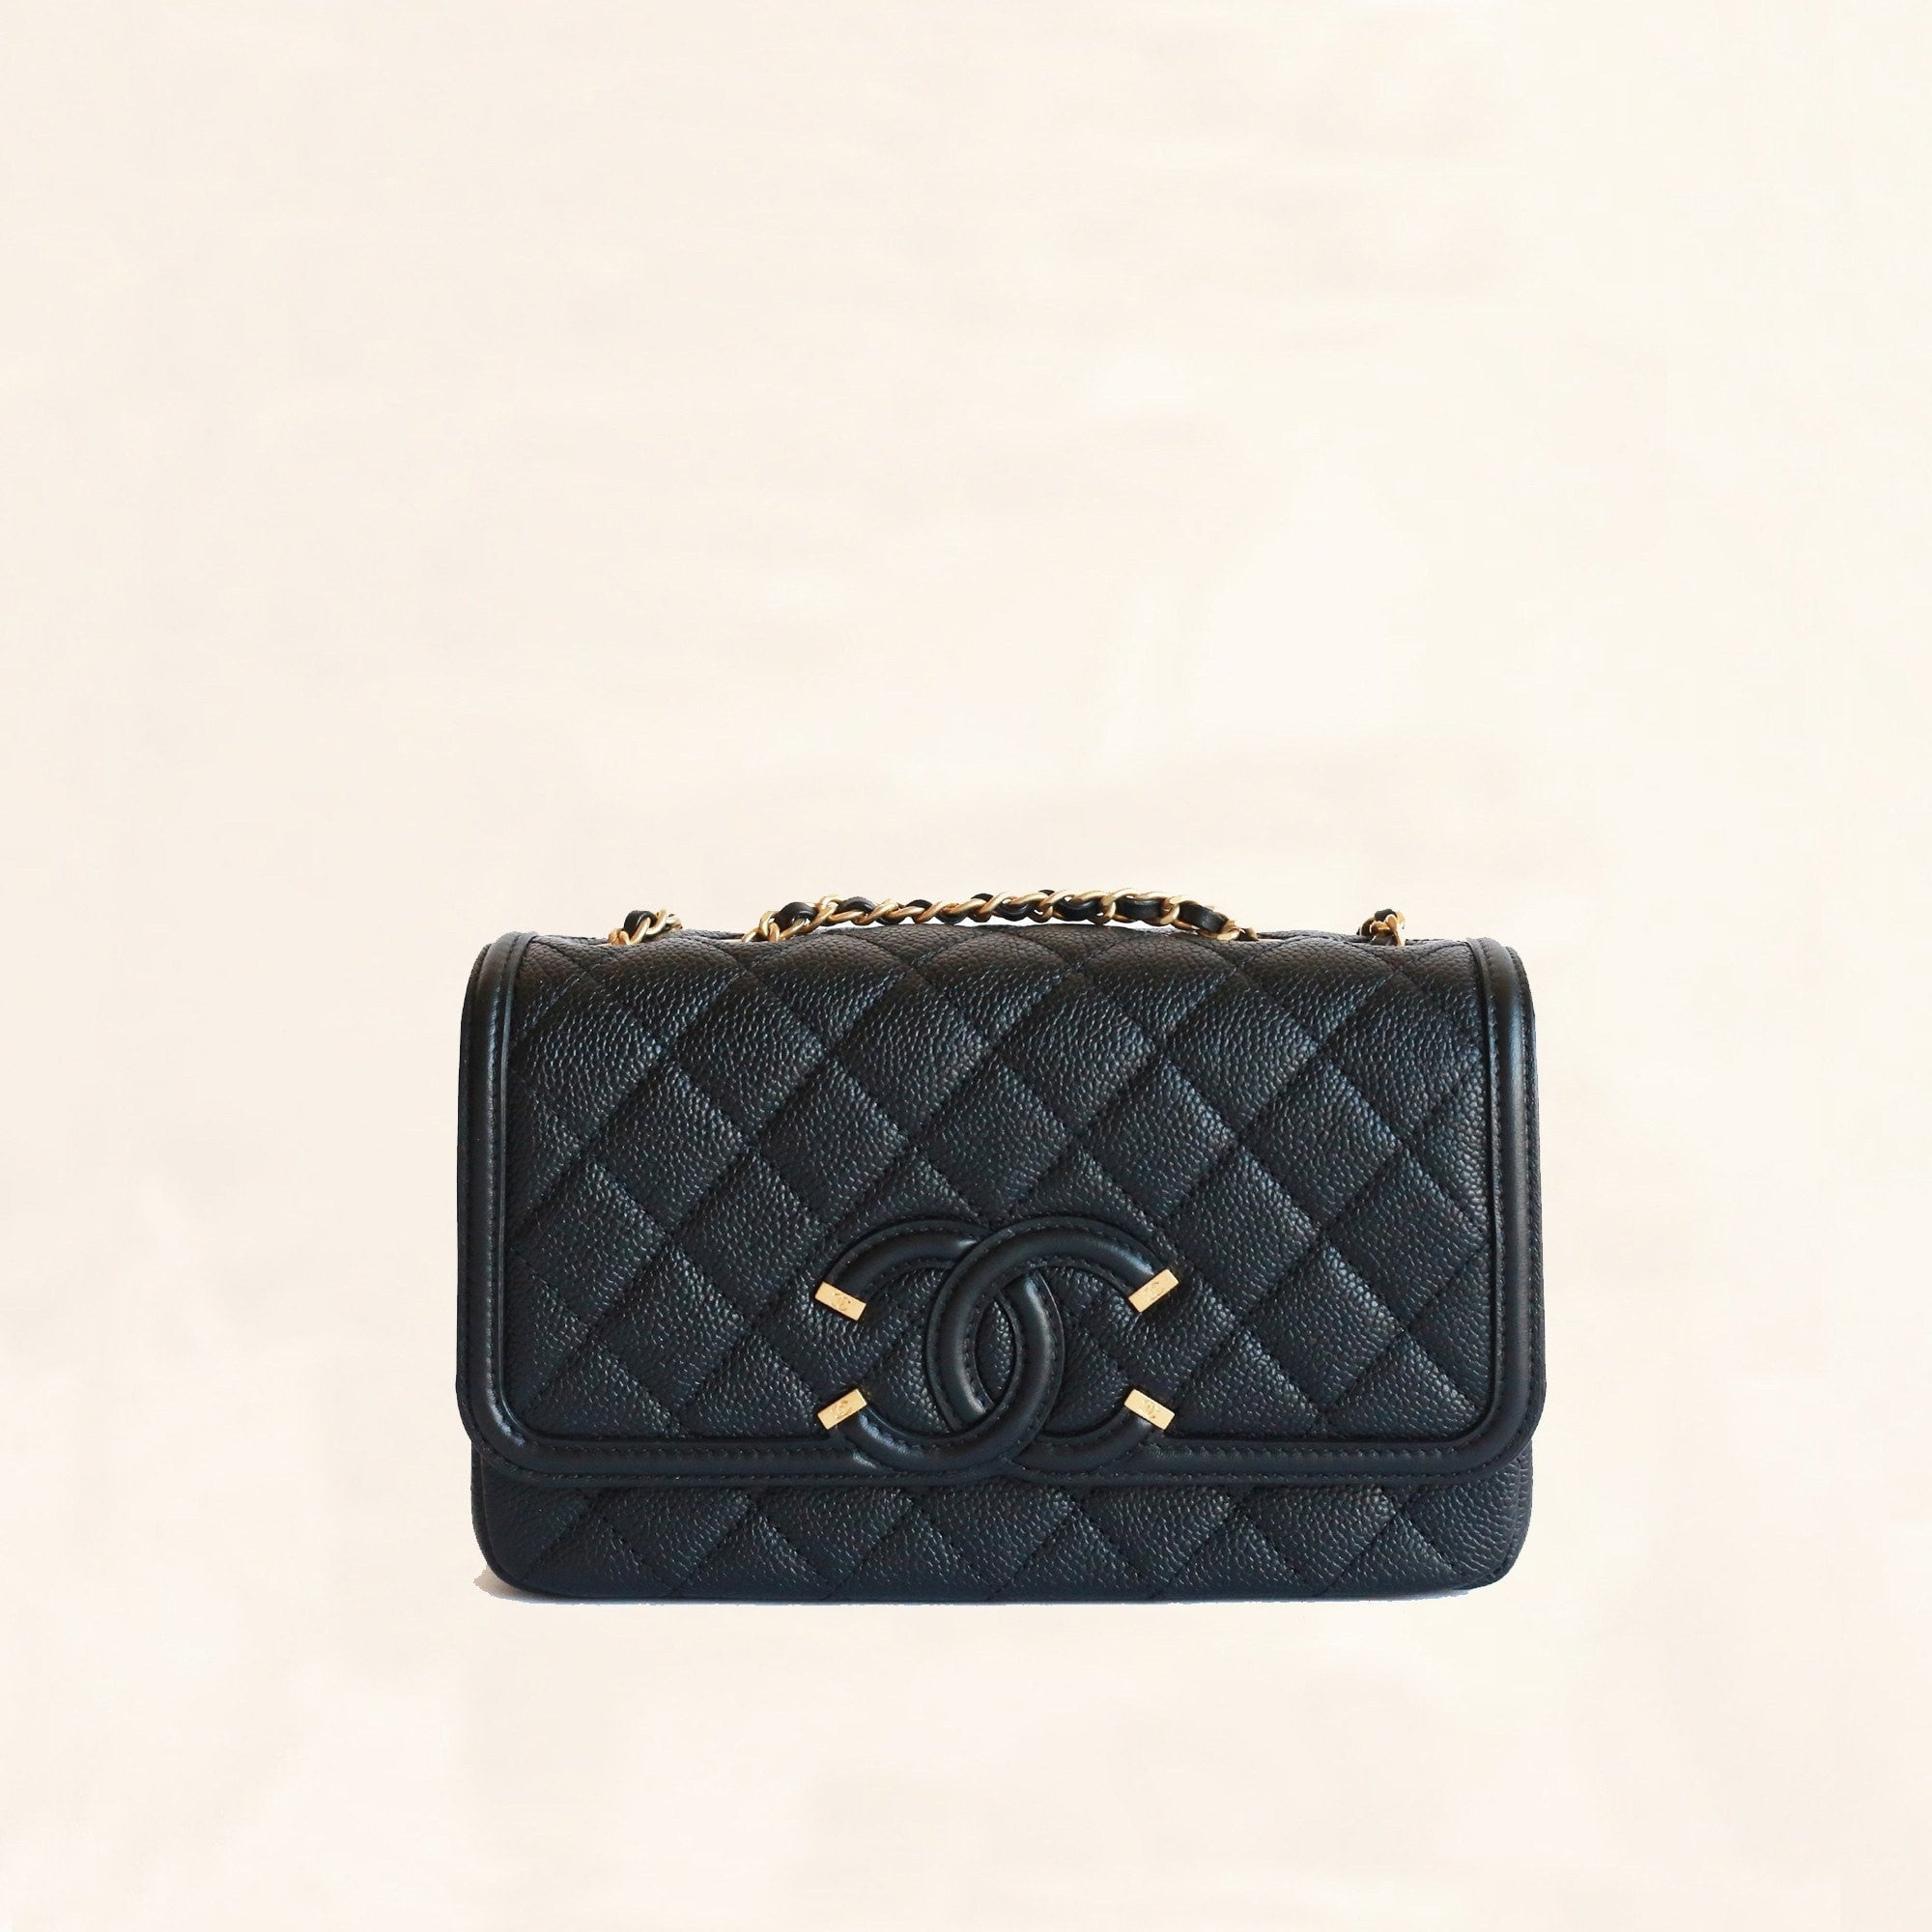 d6fadd723f0b1e Chanel | Caviar SS16 Quilted Filigree Flap Bag | Small - The-Collectory